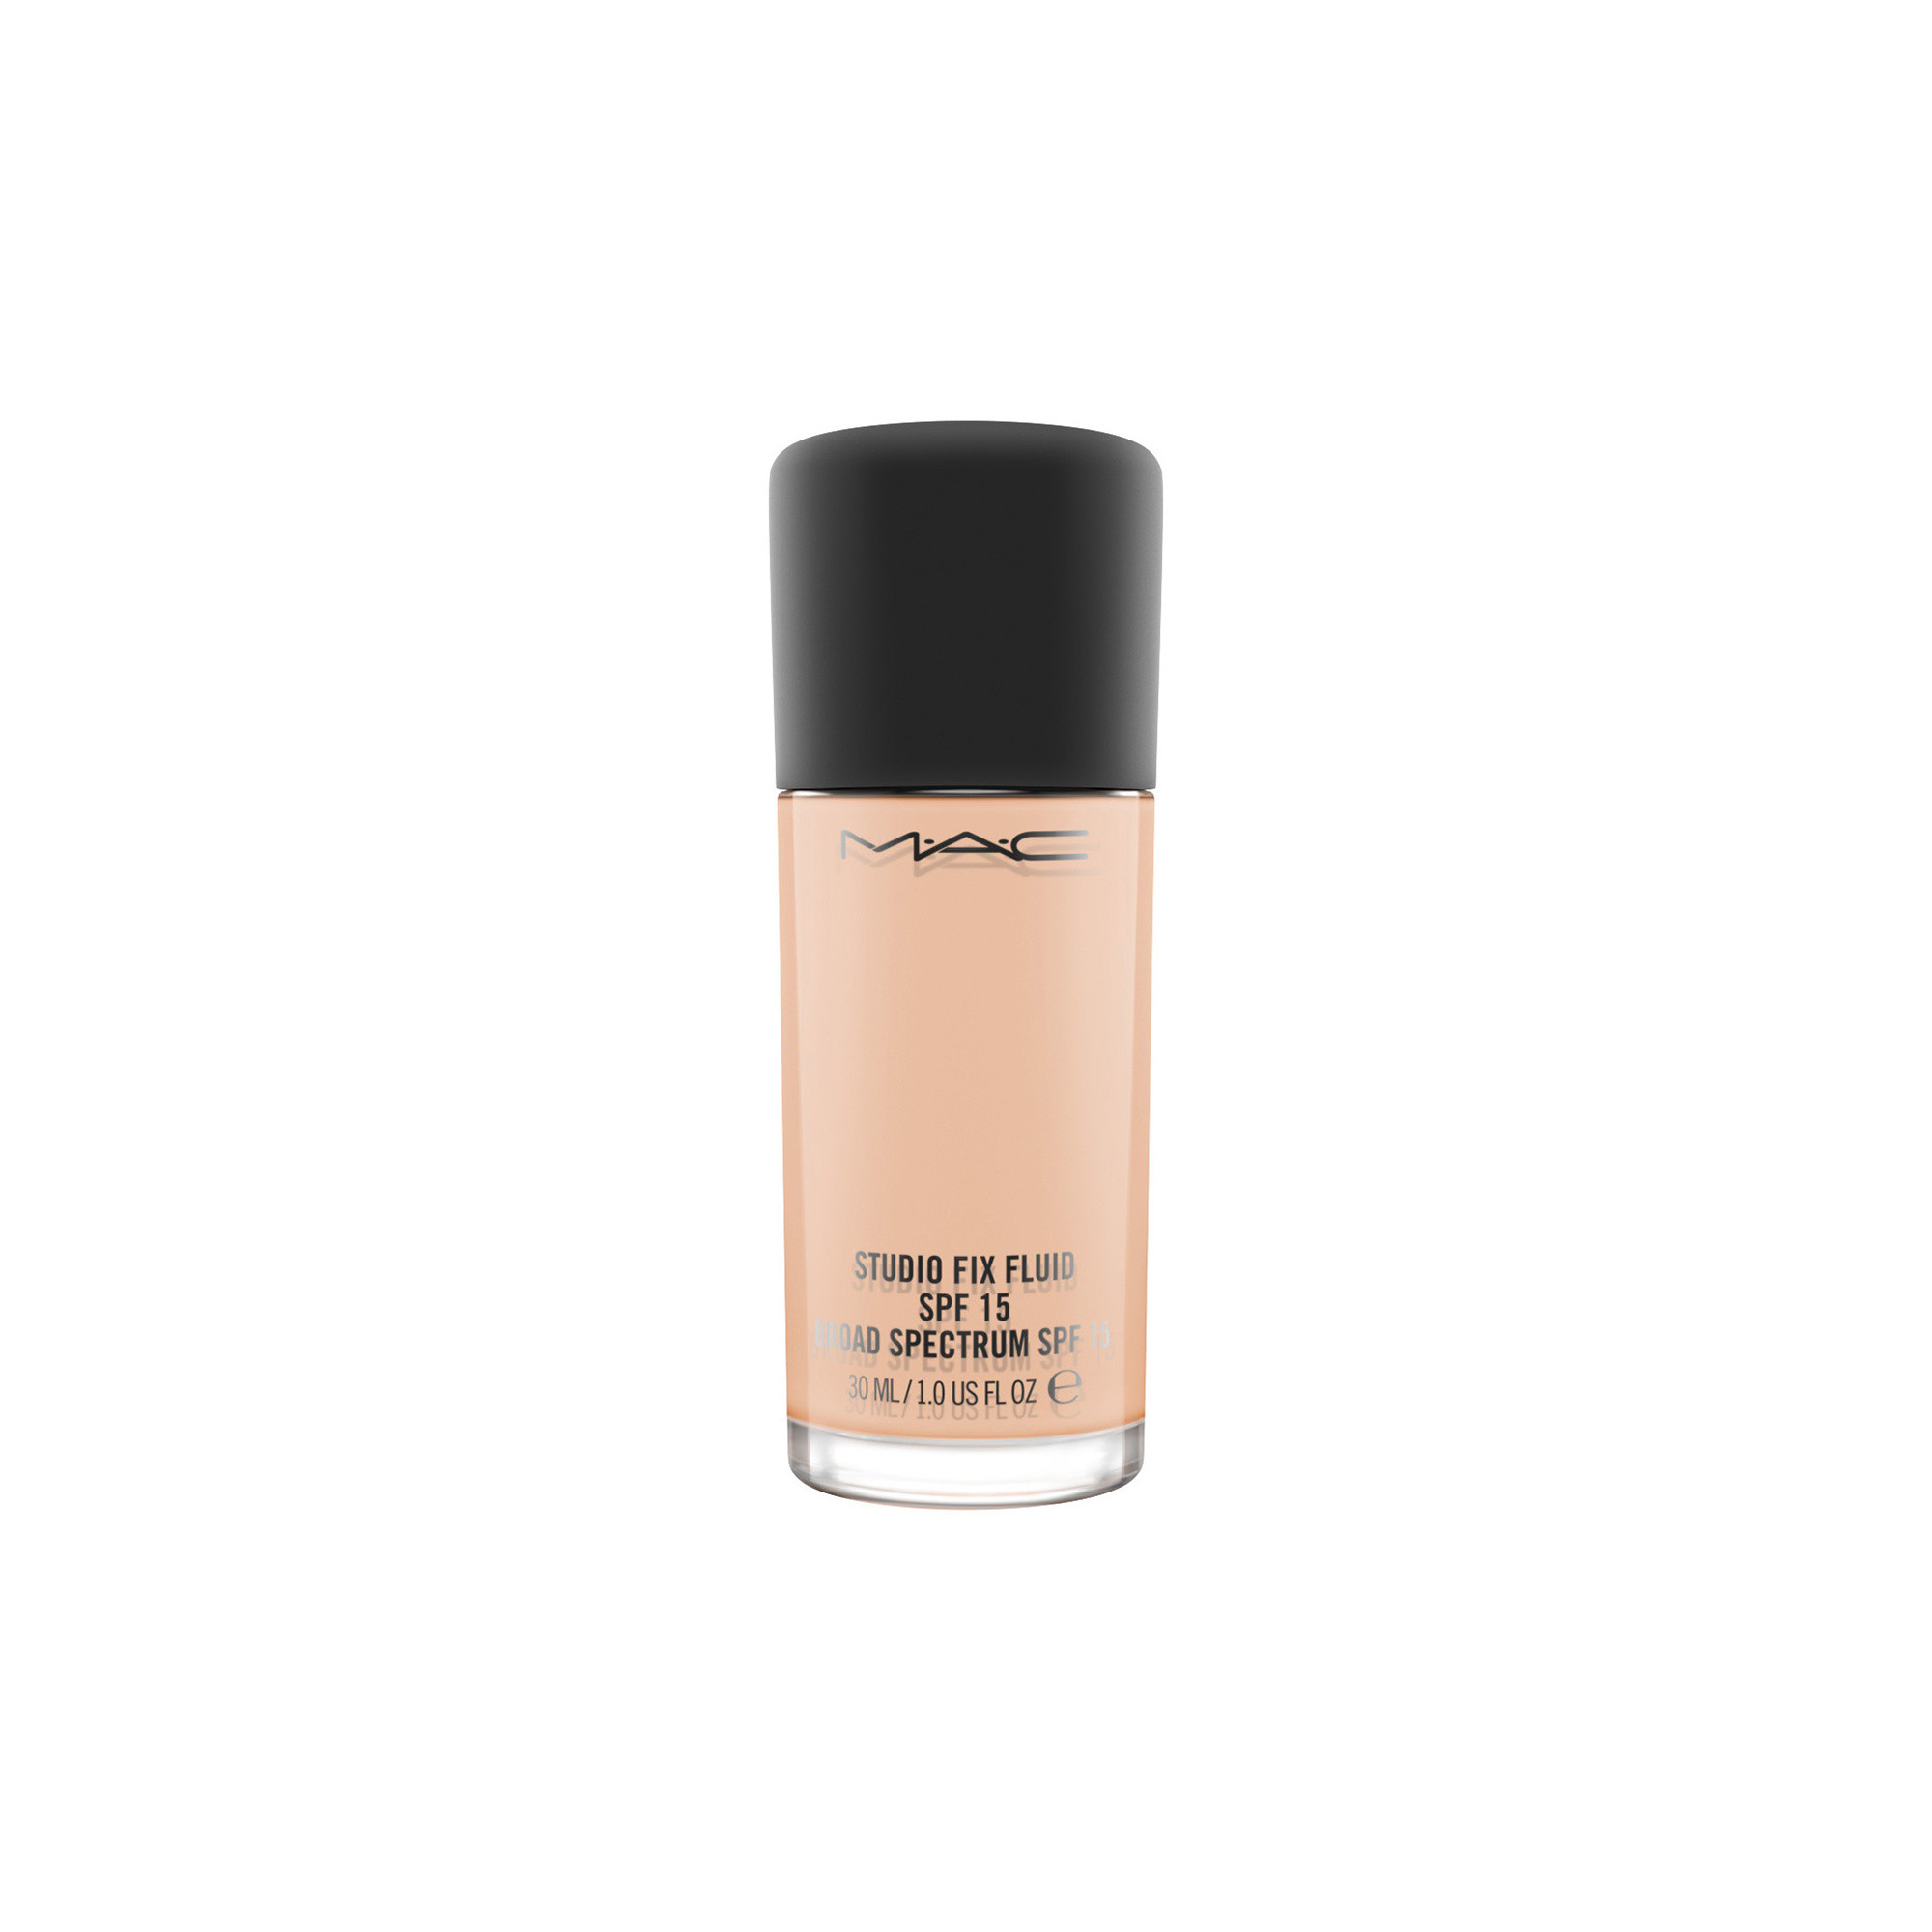 Studio Fix Fluid Foundation Spf15 - NW18, NW18, large image number 0